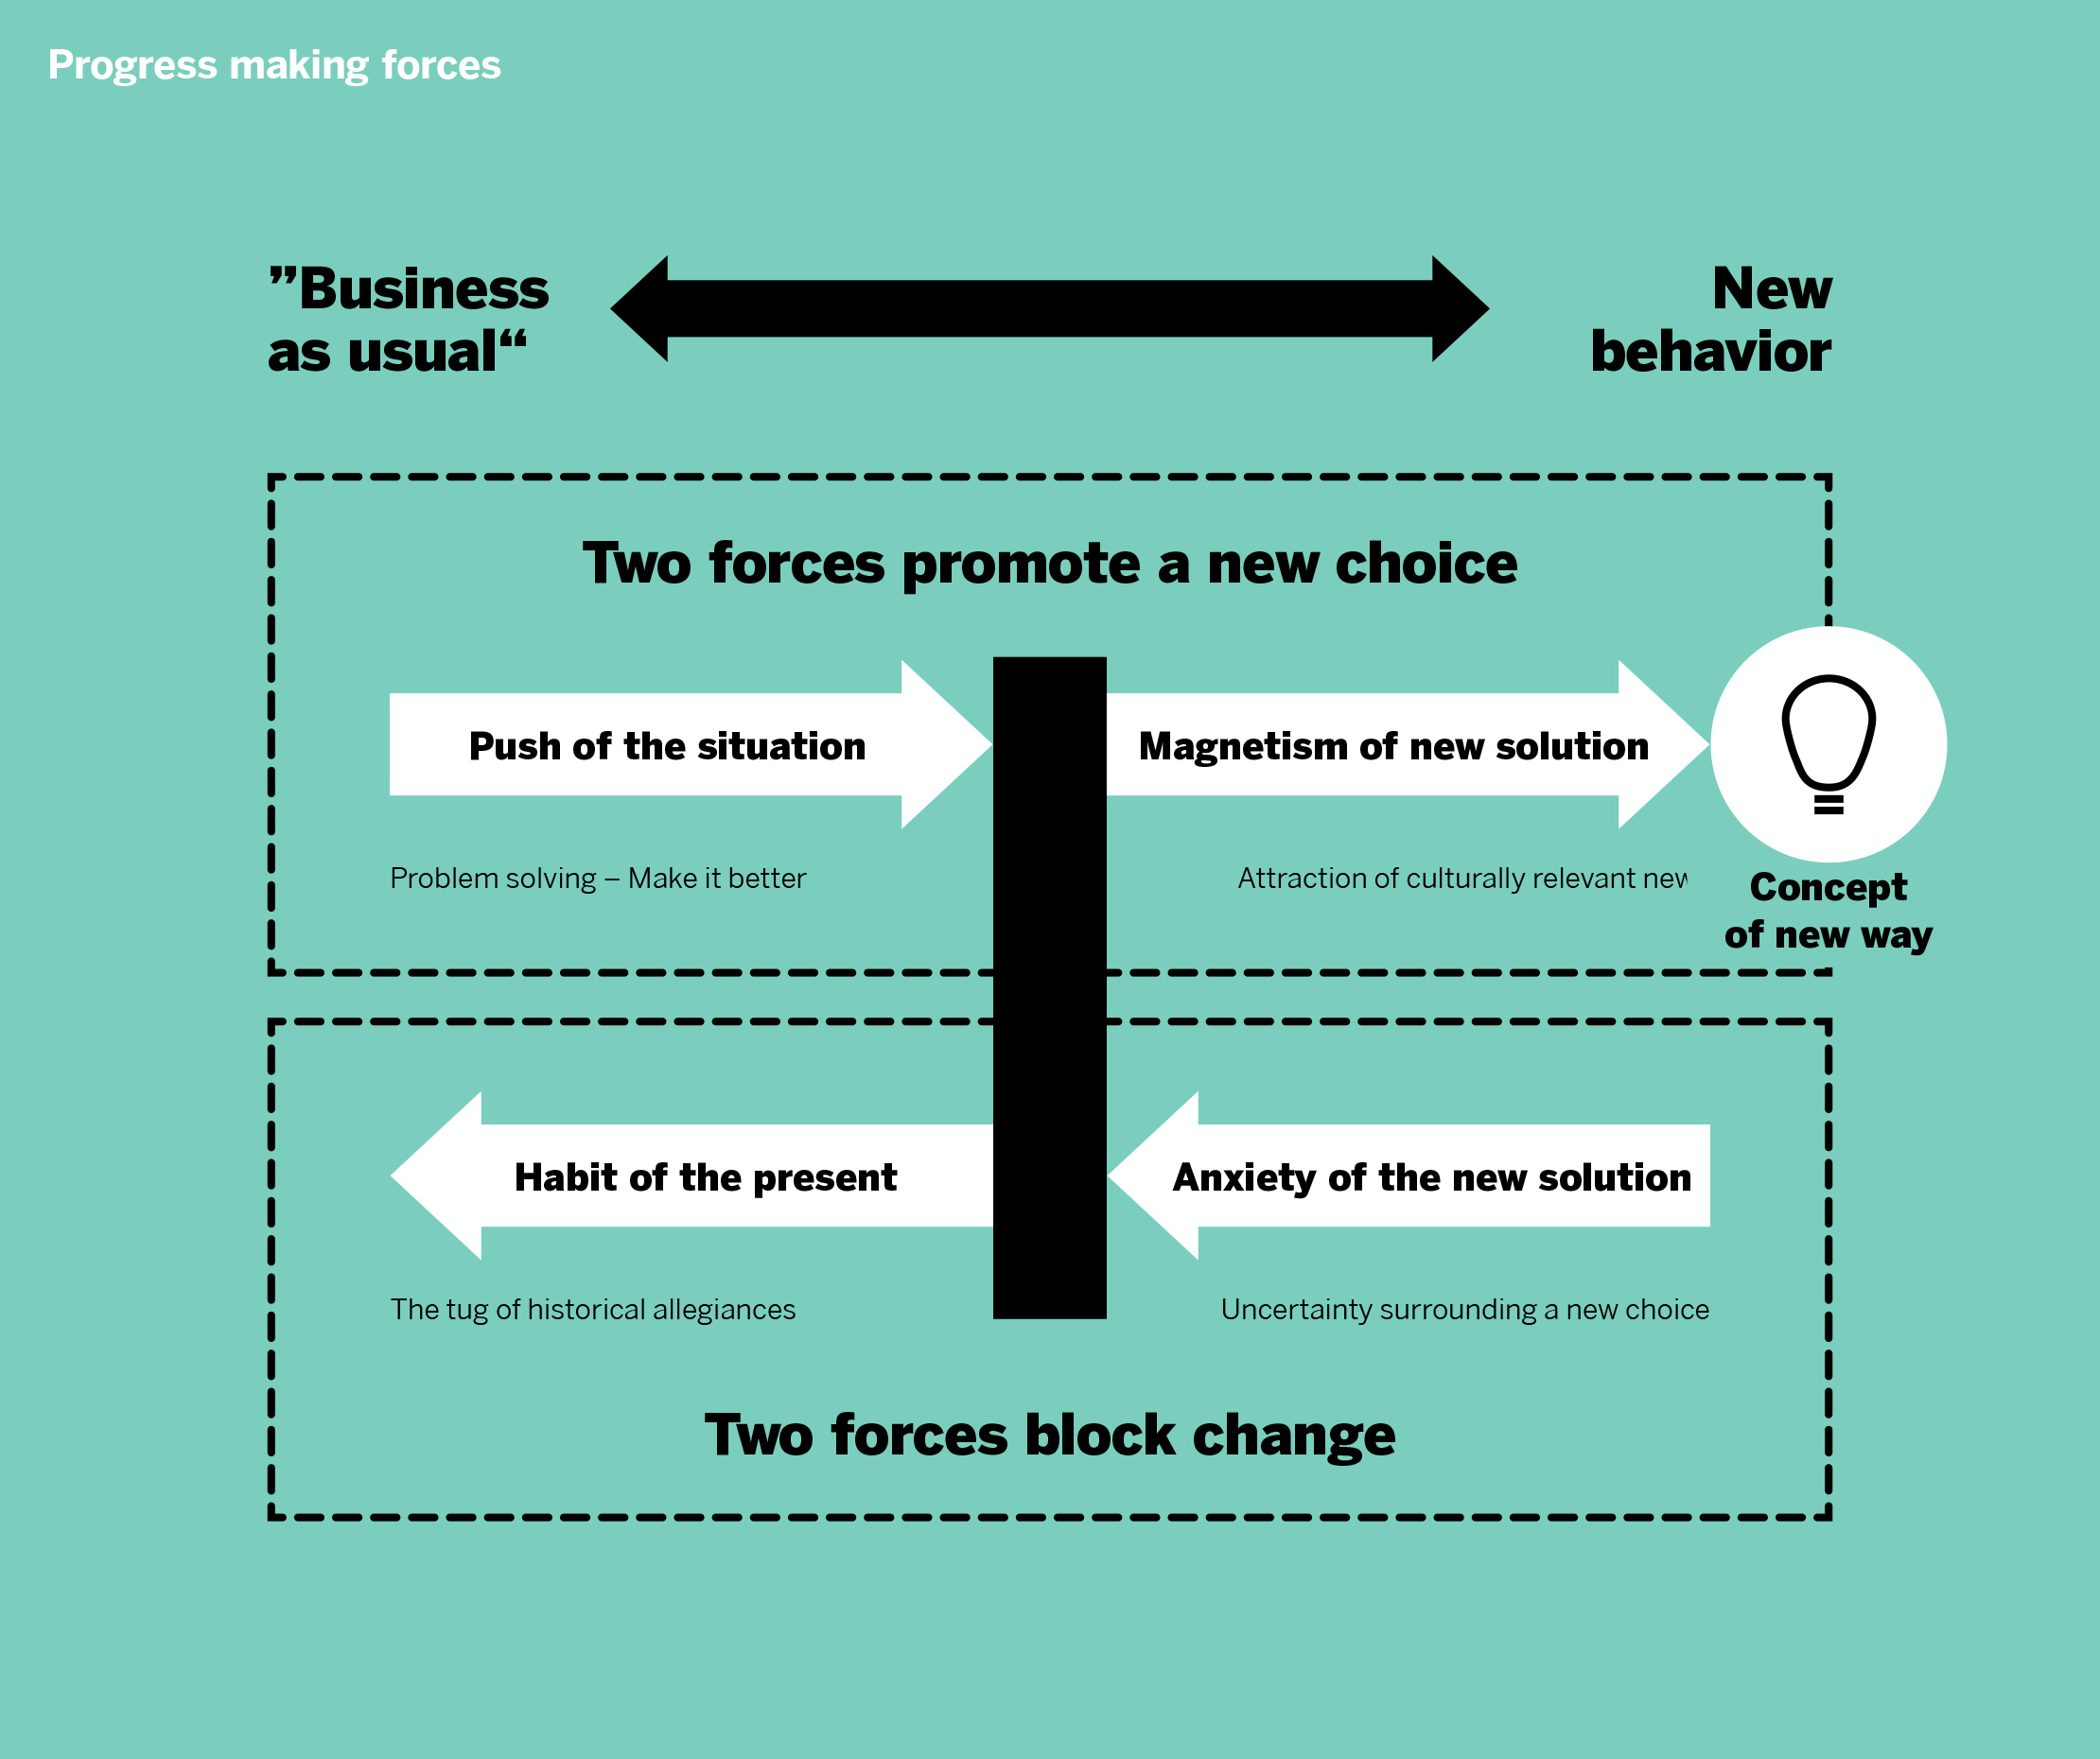 jtbd-glossar-graphic-02-progress-making-forces